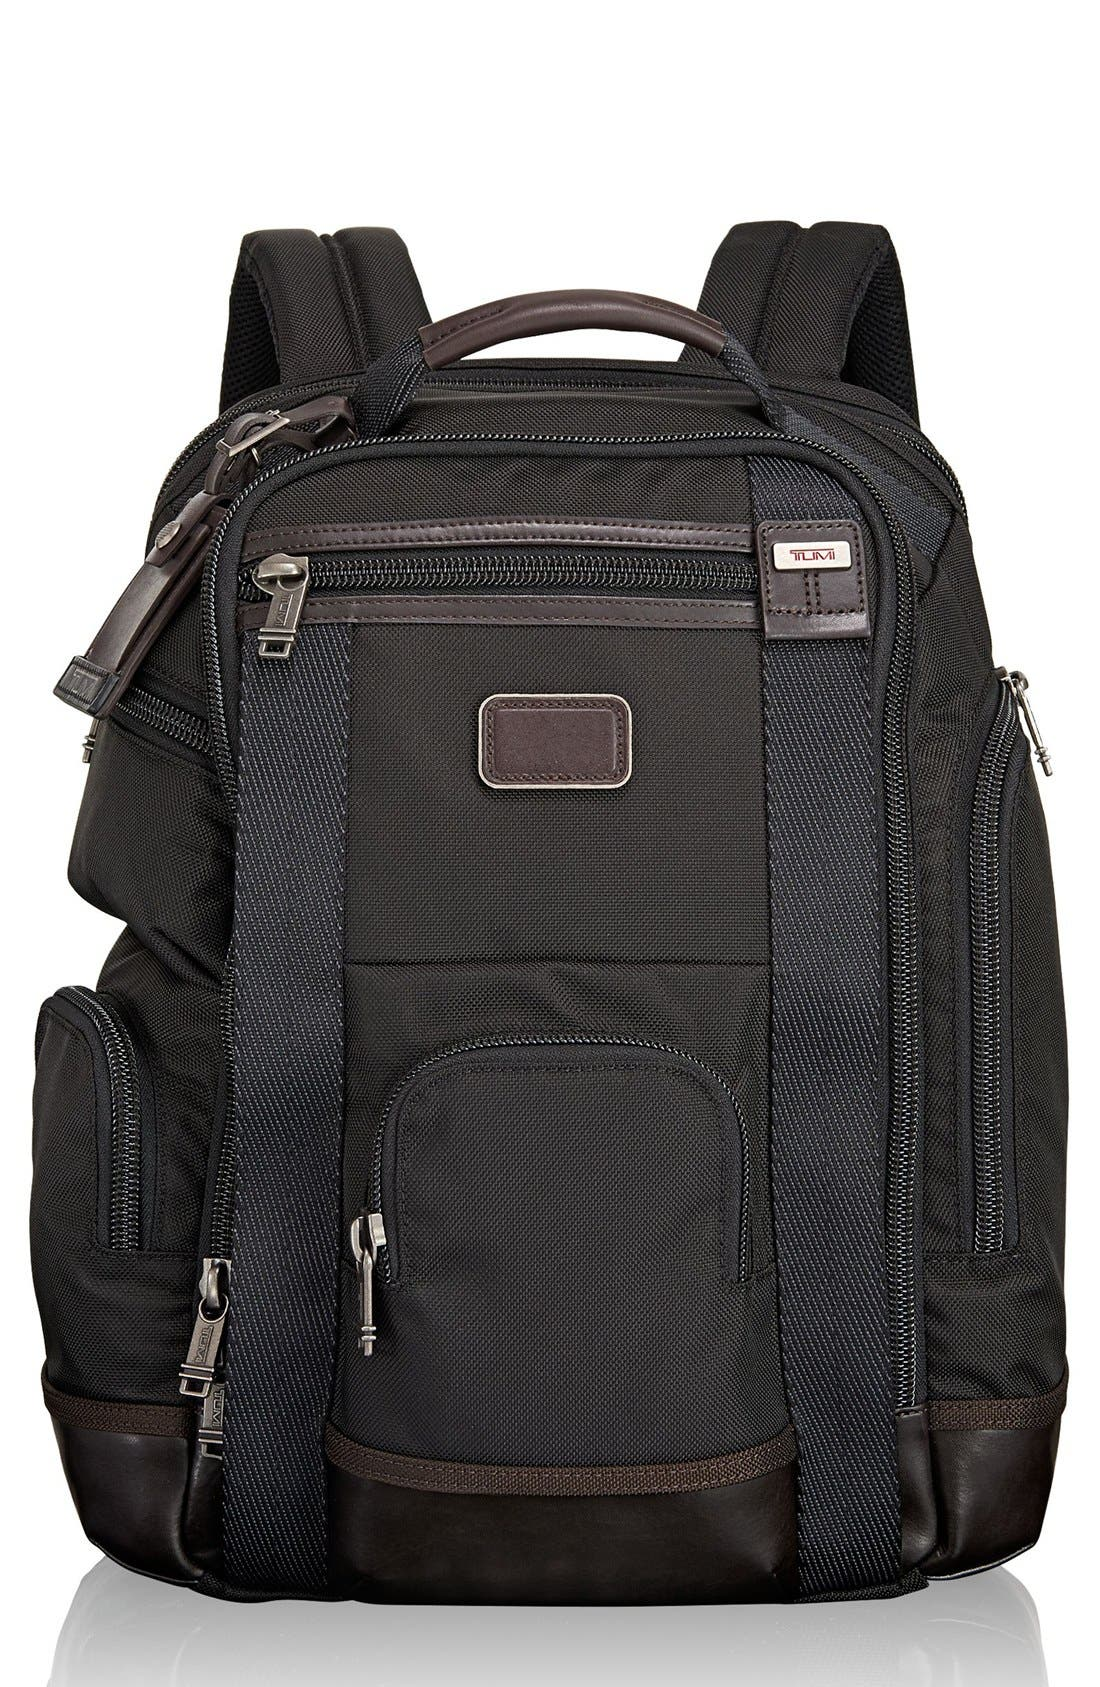 Main Image - Tumi Alpha Bravo Shaw Deluxe Backpack